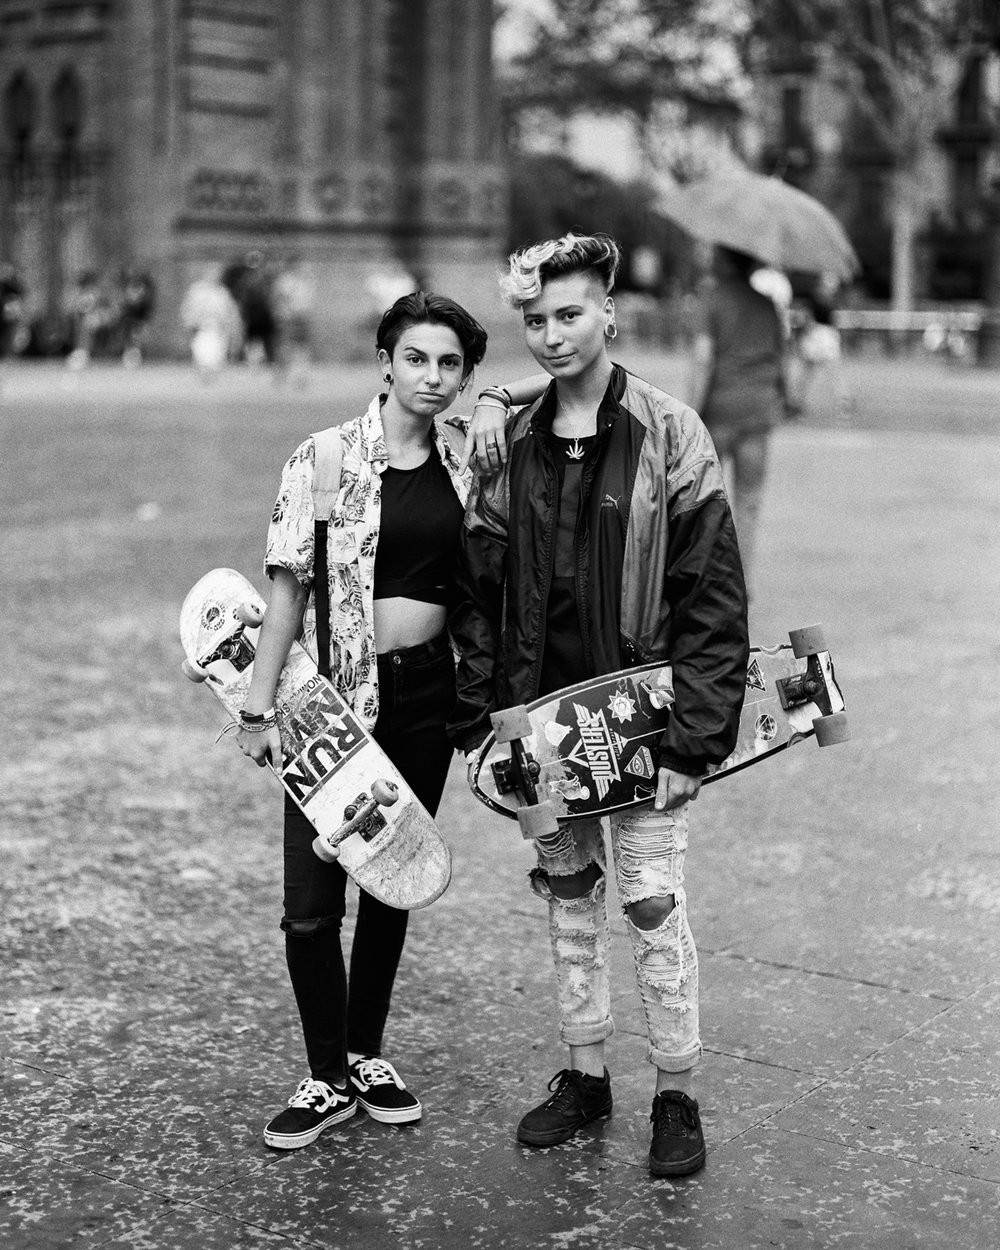 Skater Kids Barcelona, Spain  2017